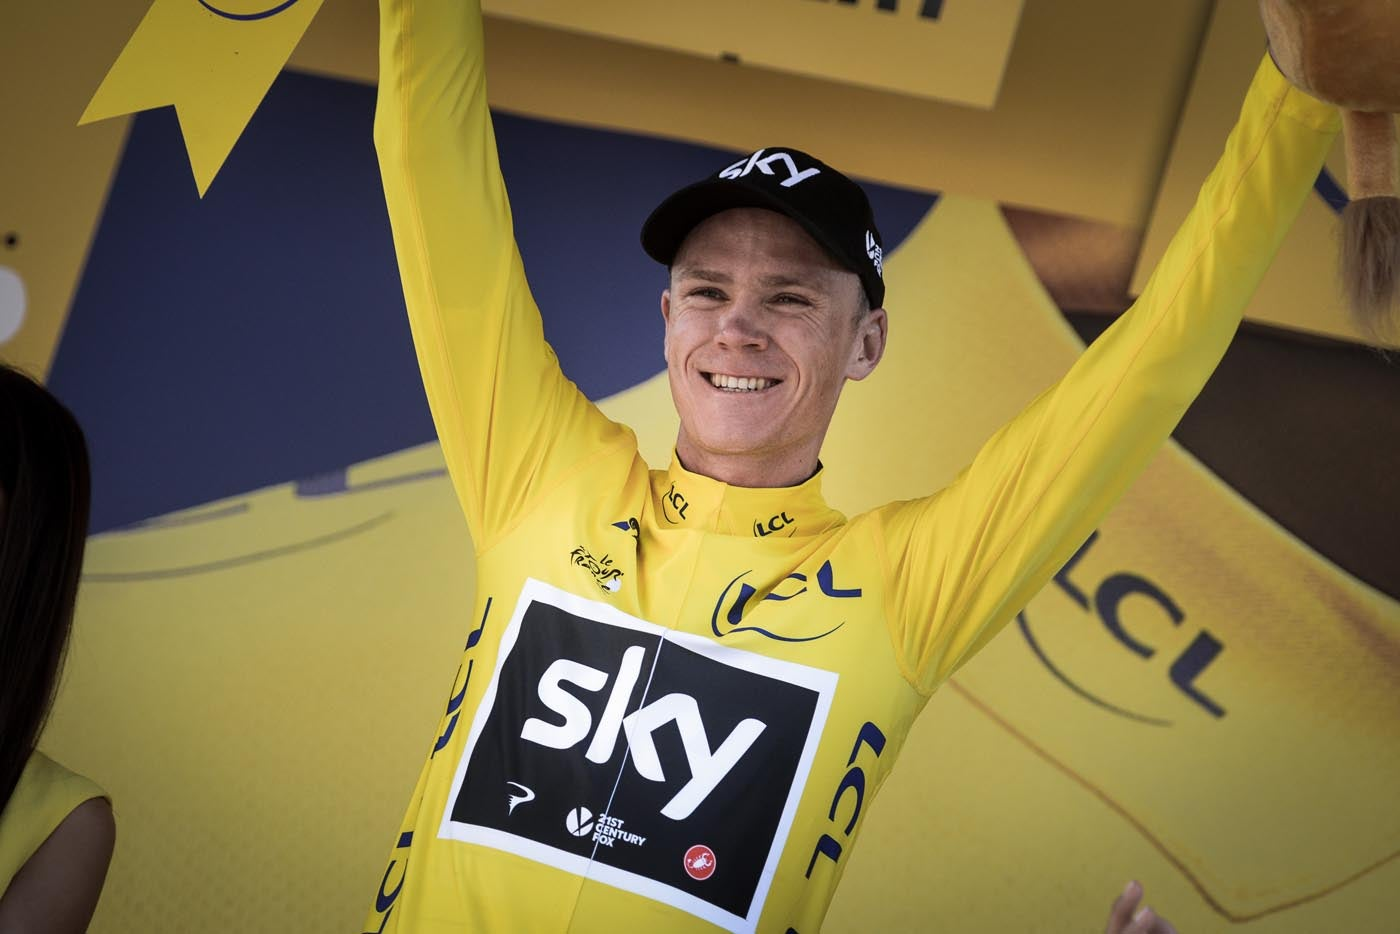 stg15_froome podium_tdf_2017 DETAIL